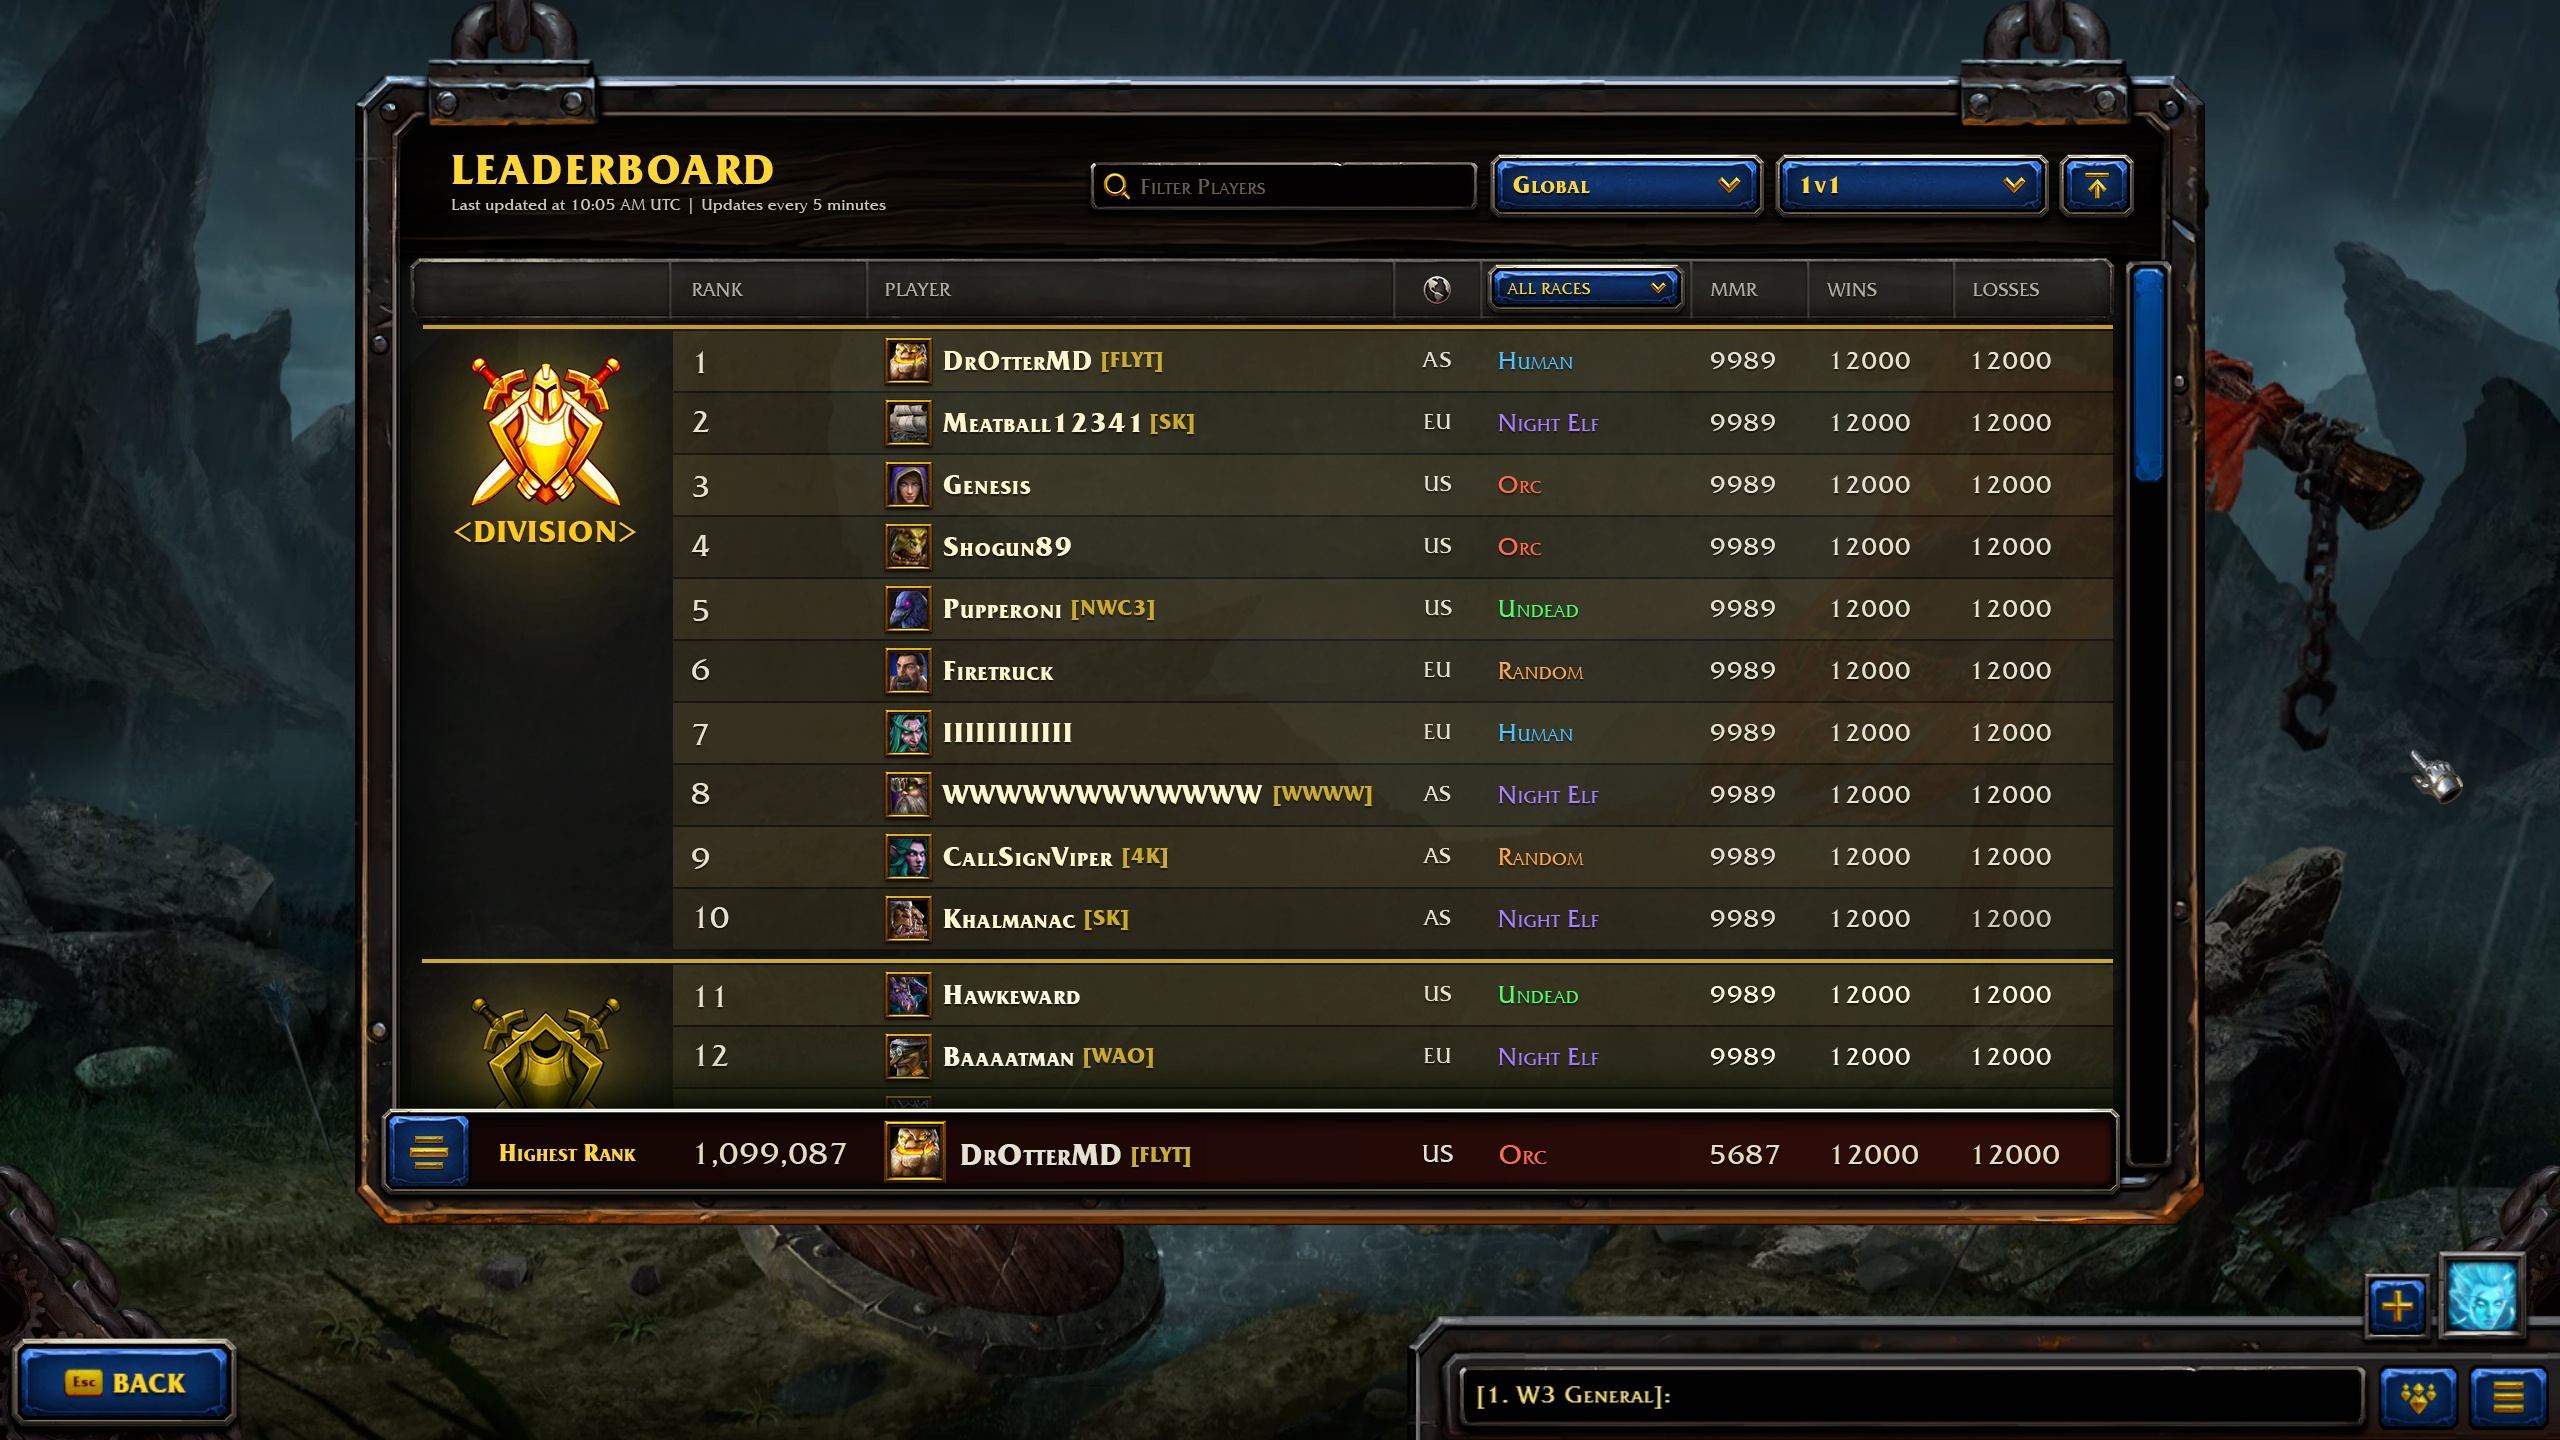 Warcraft 3 Reforged Ranked 1